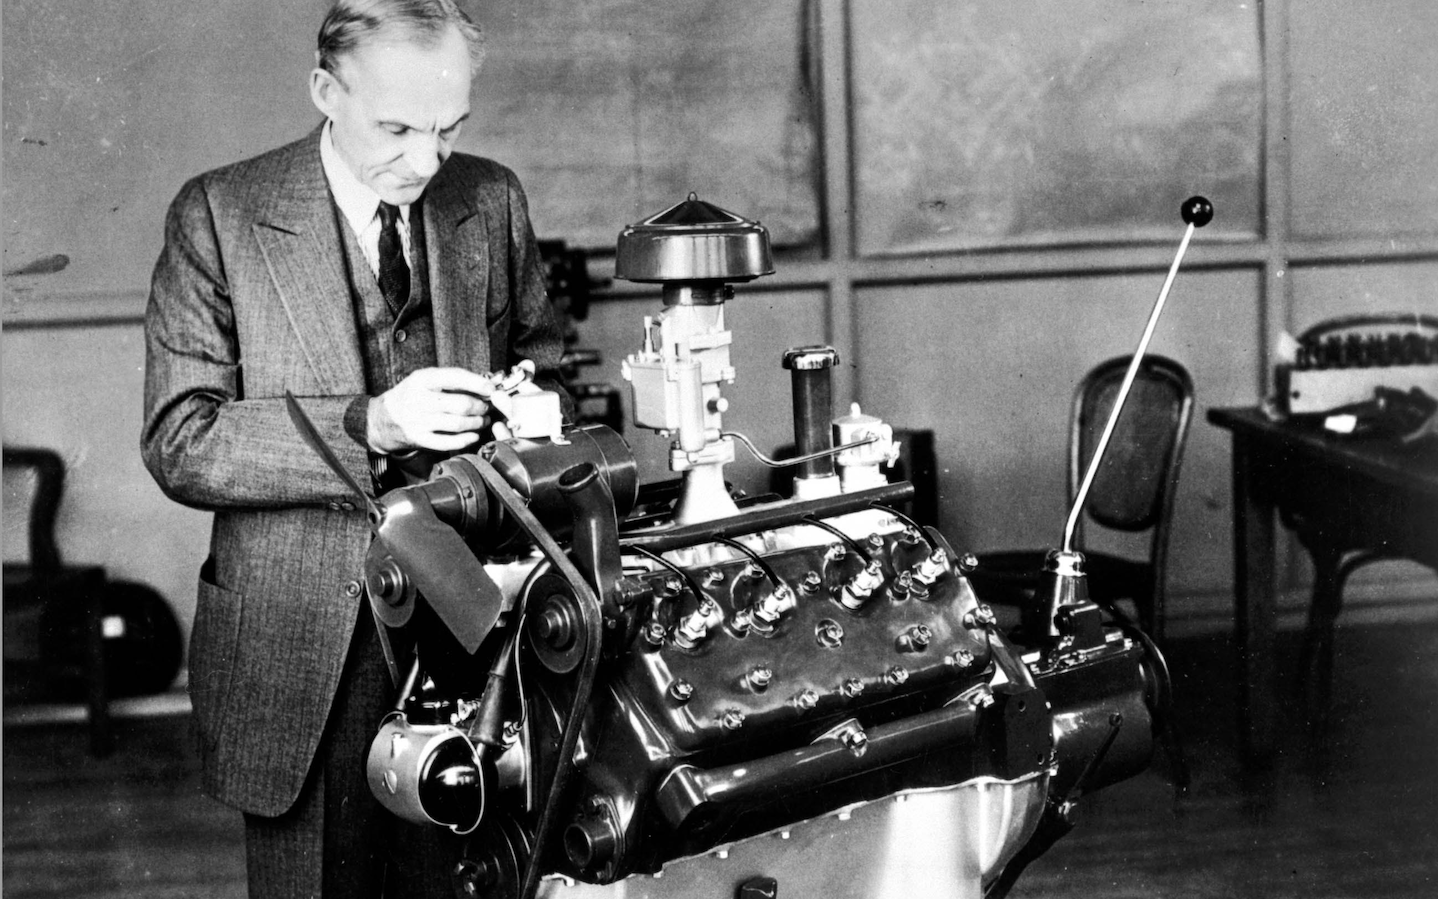 Fords 46 V8 Has A Design Flaw Fire Engine Drivetrain Diagram Henry Ford Looking At An